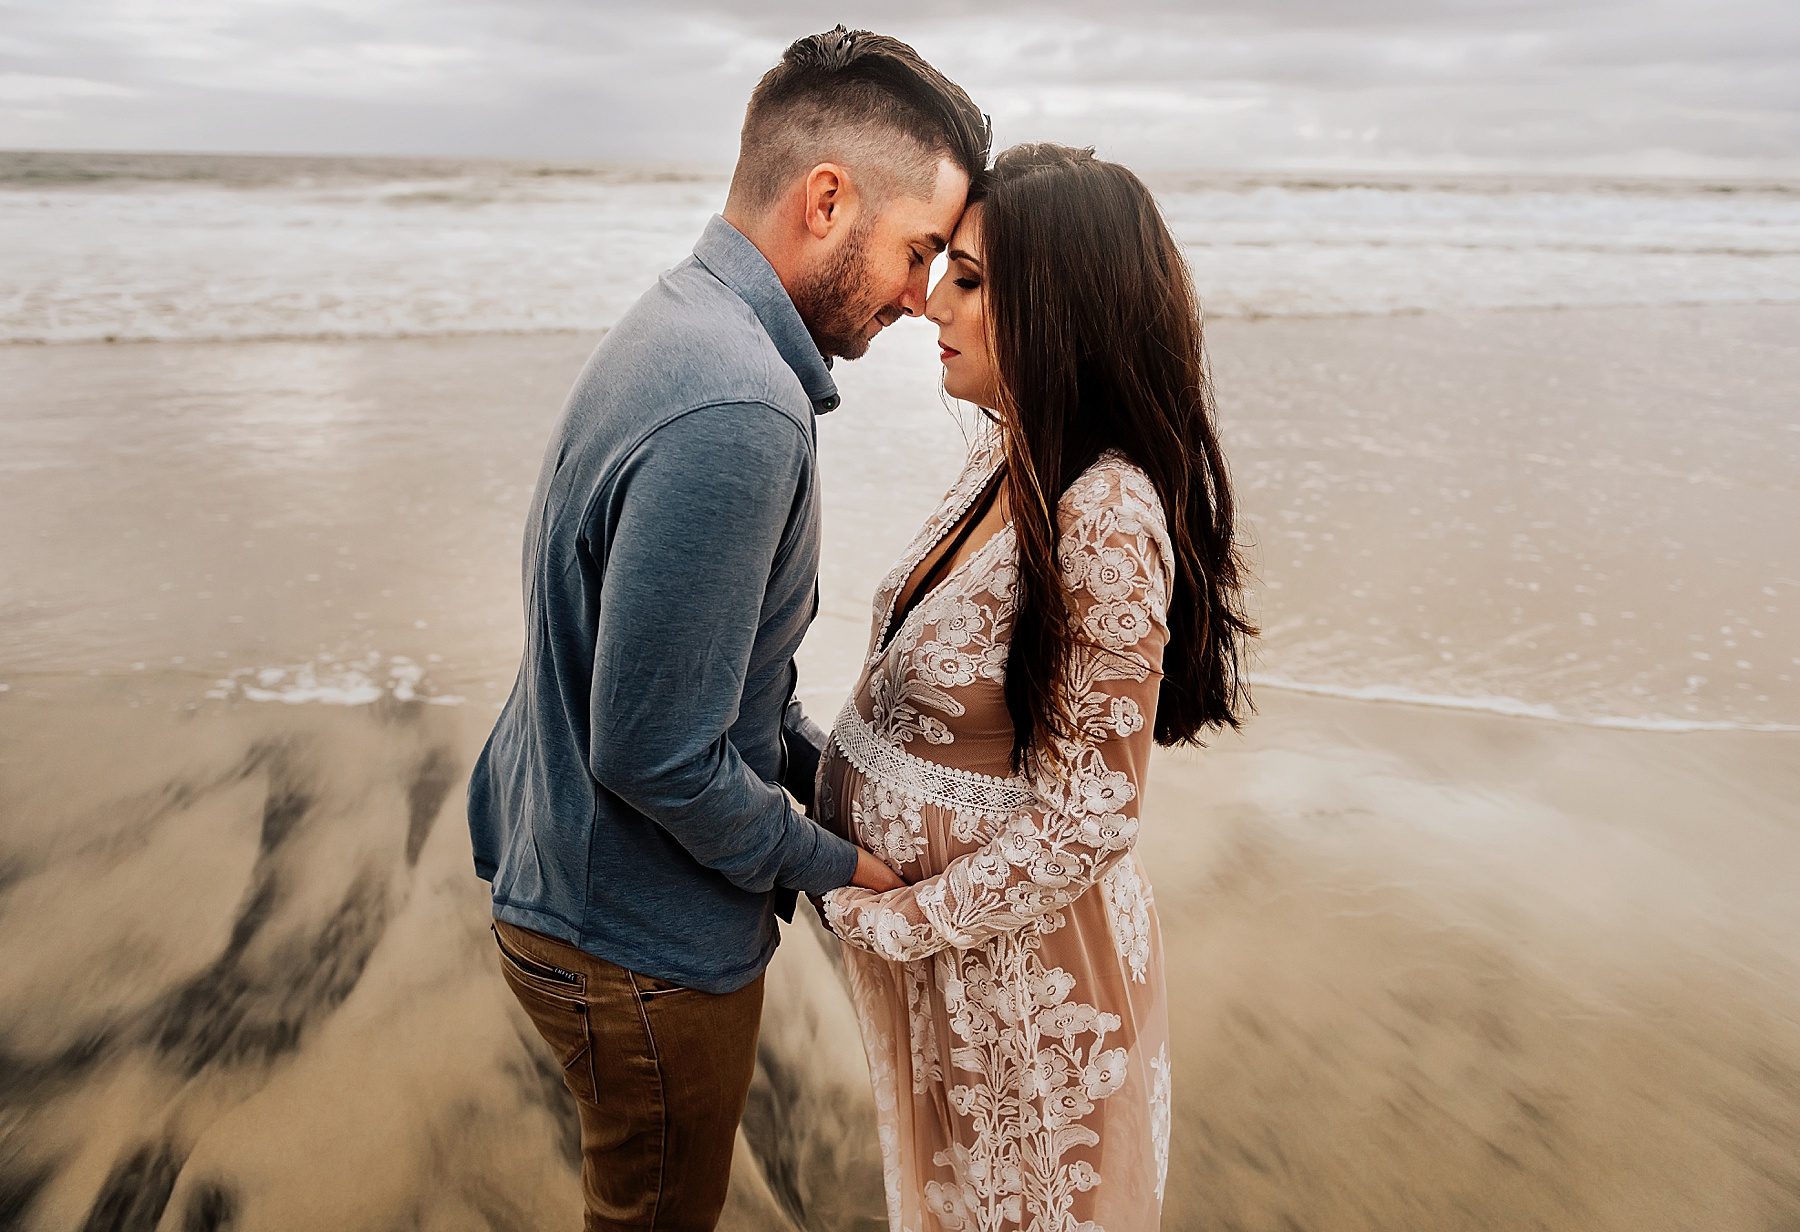 del mar beach maternity pictures